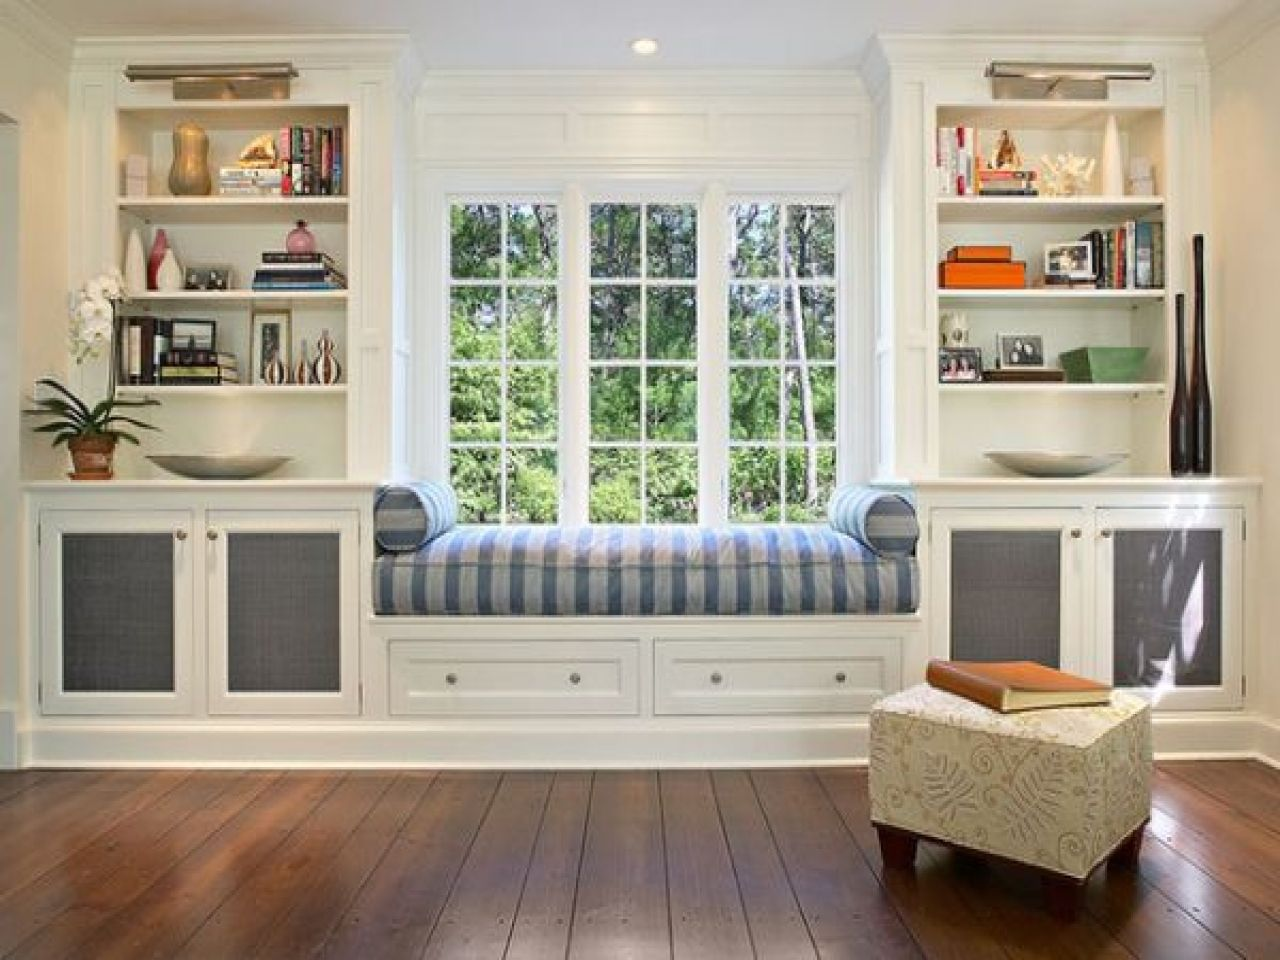 Window Seating For Dining Room - East hampton colonial traditional living room window seat cushion foam wrapped in down